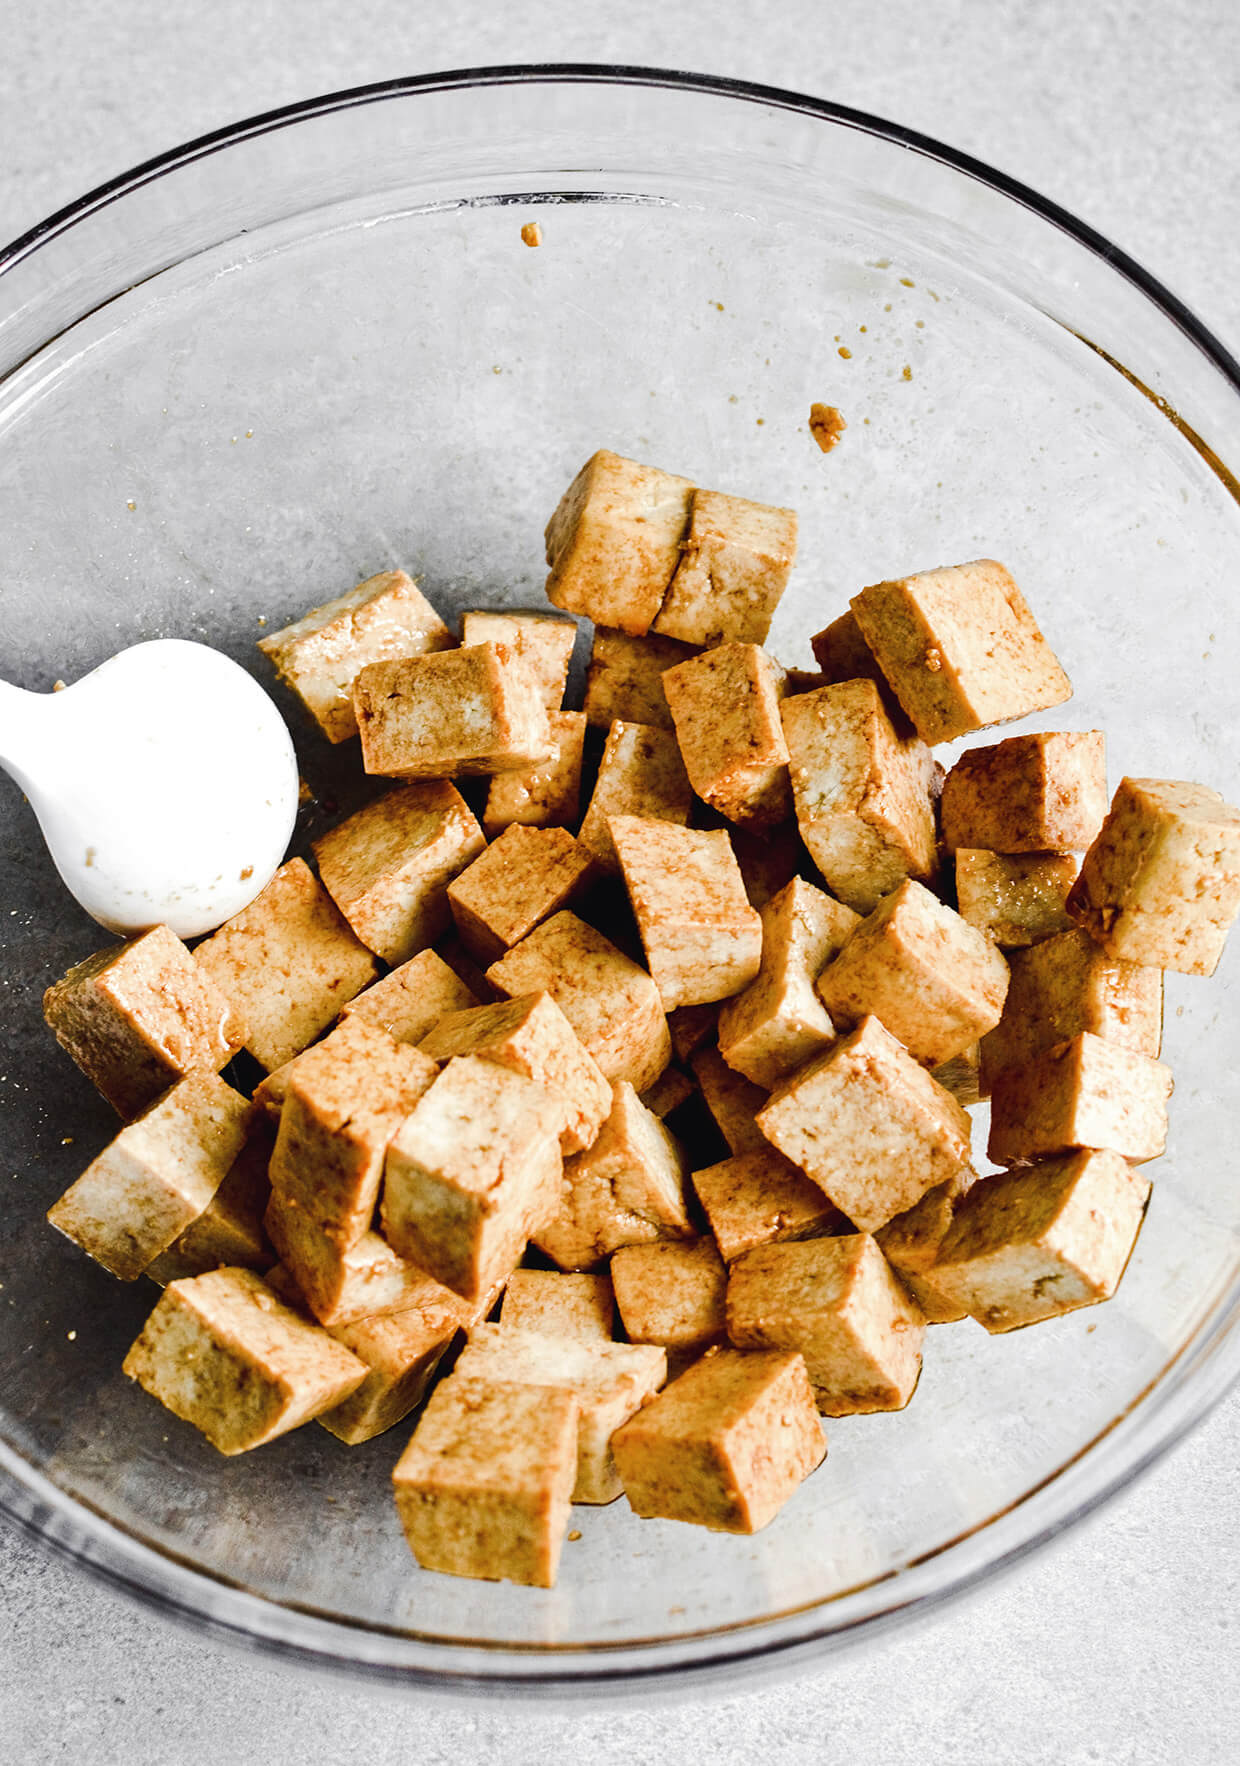 chopped tofu for Crispy tofu shaved brussels sprout salad with honey mustard dressing